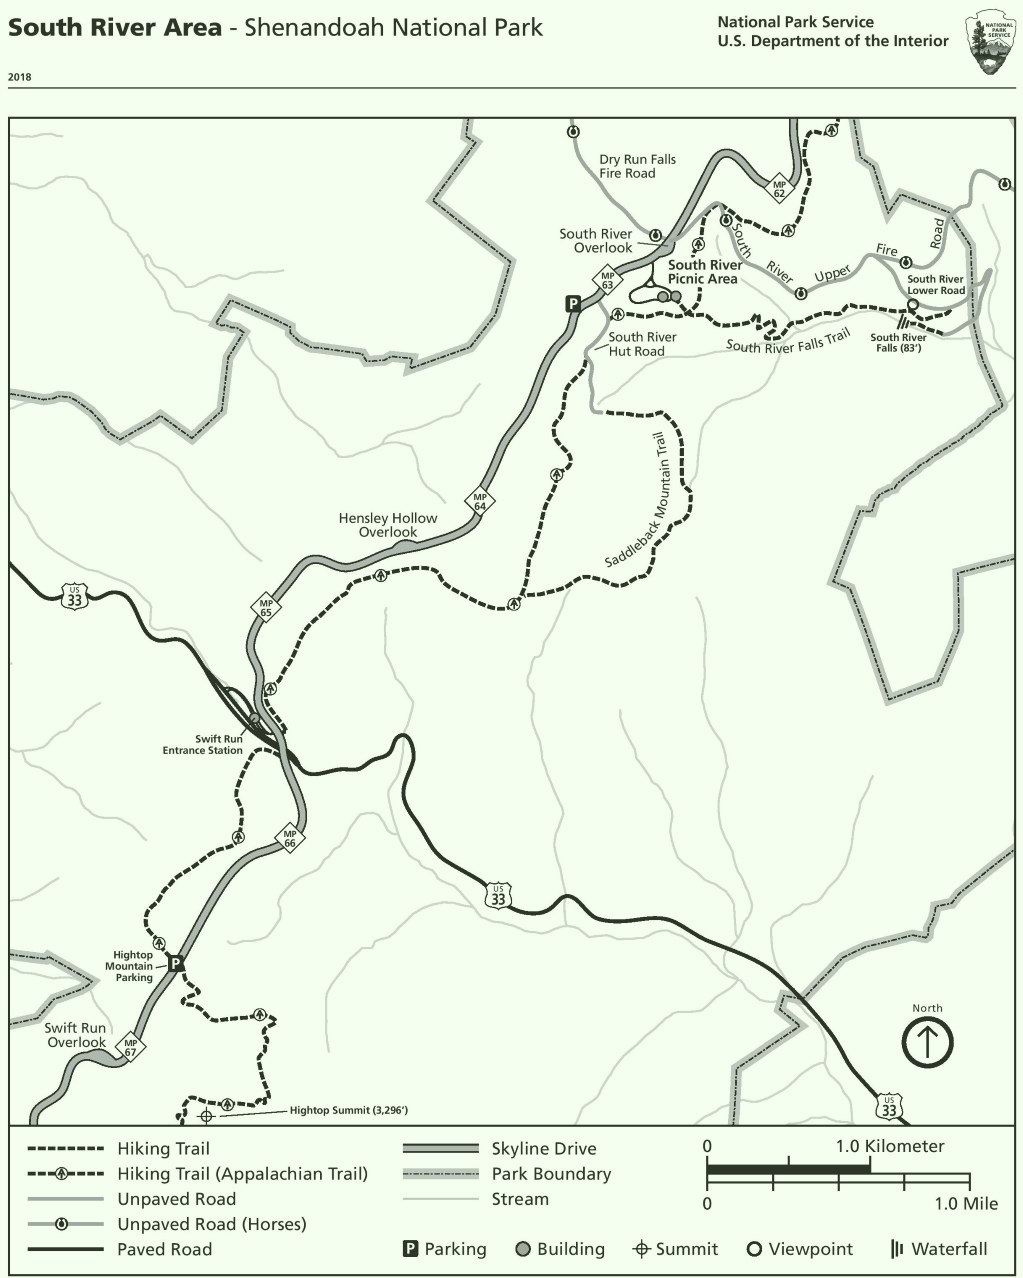 Shenandoah South River Area trail map